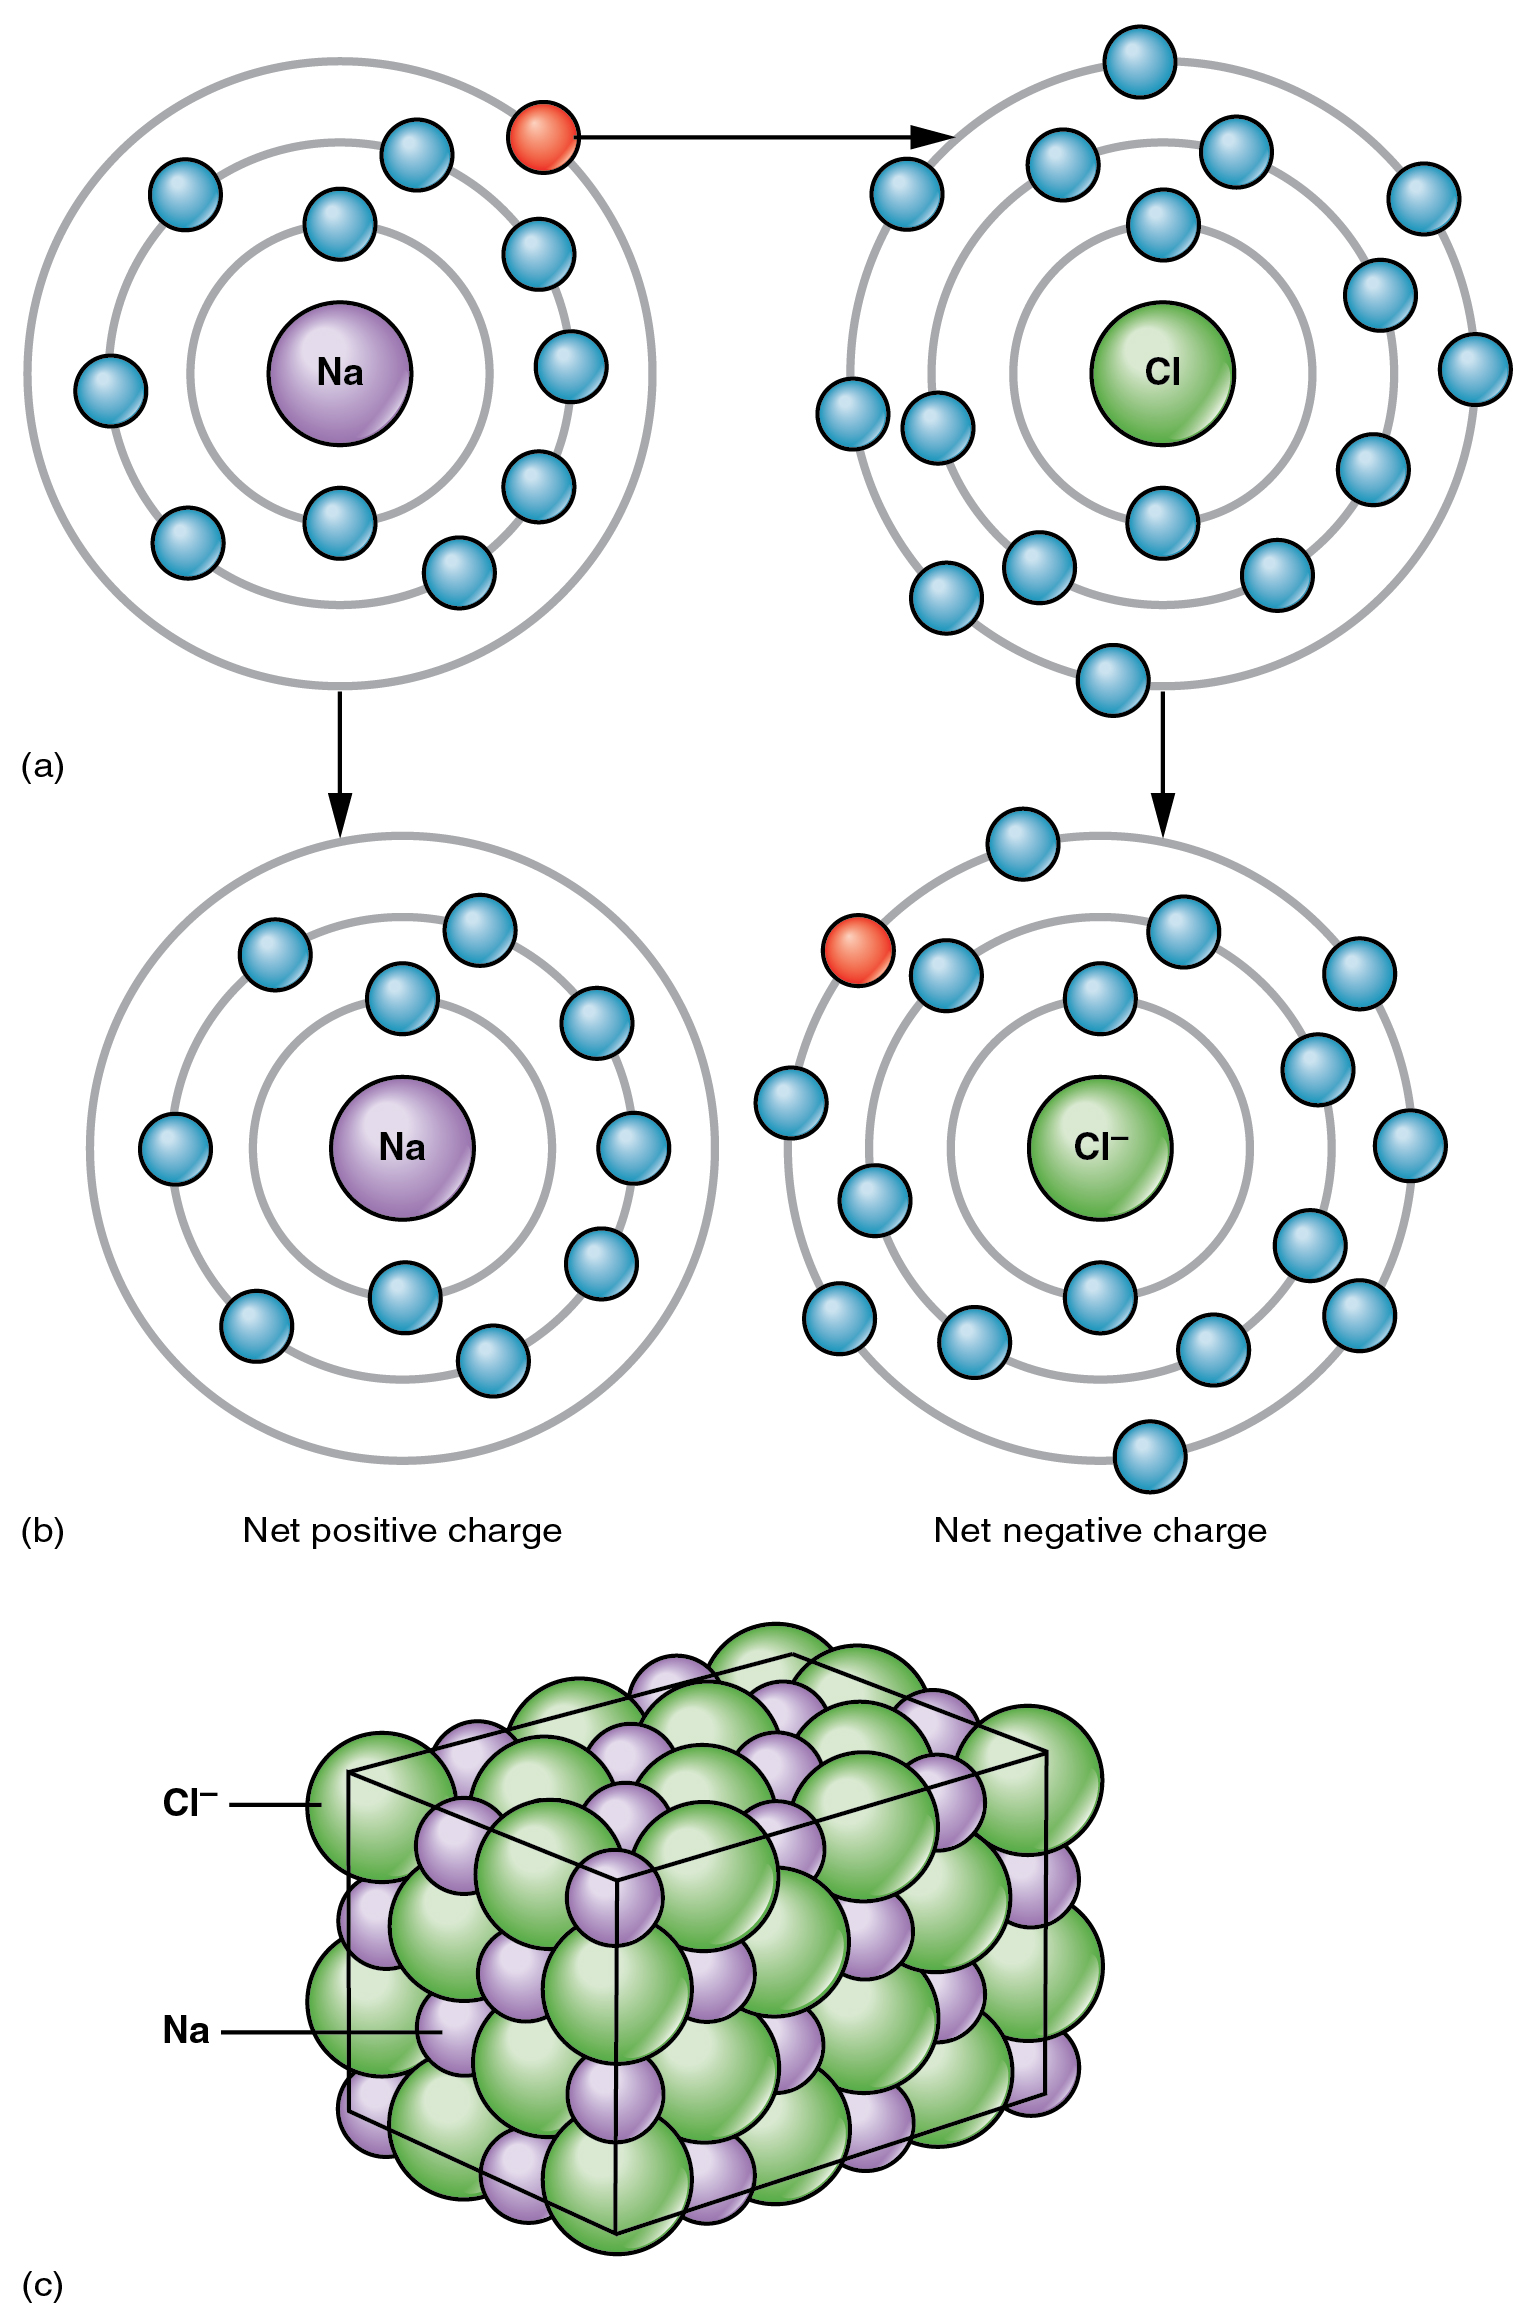 The top panel of this figure shows the orbit model of a sodium atom and a chlorine atom and arrows pointing towards the transfer of electrons from sodium to chlorine to form sodium and chlorine ions. The bottom panel shows sodium and chloride ions in a crystal structure.